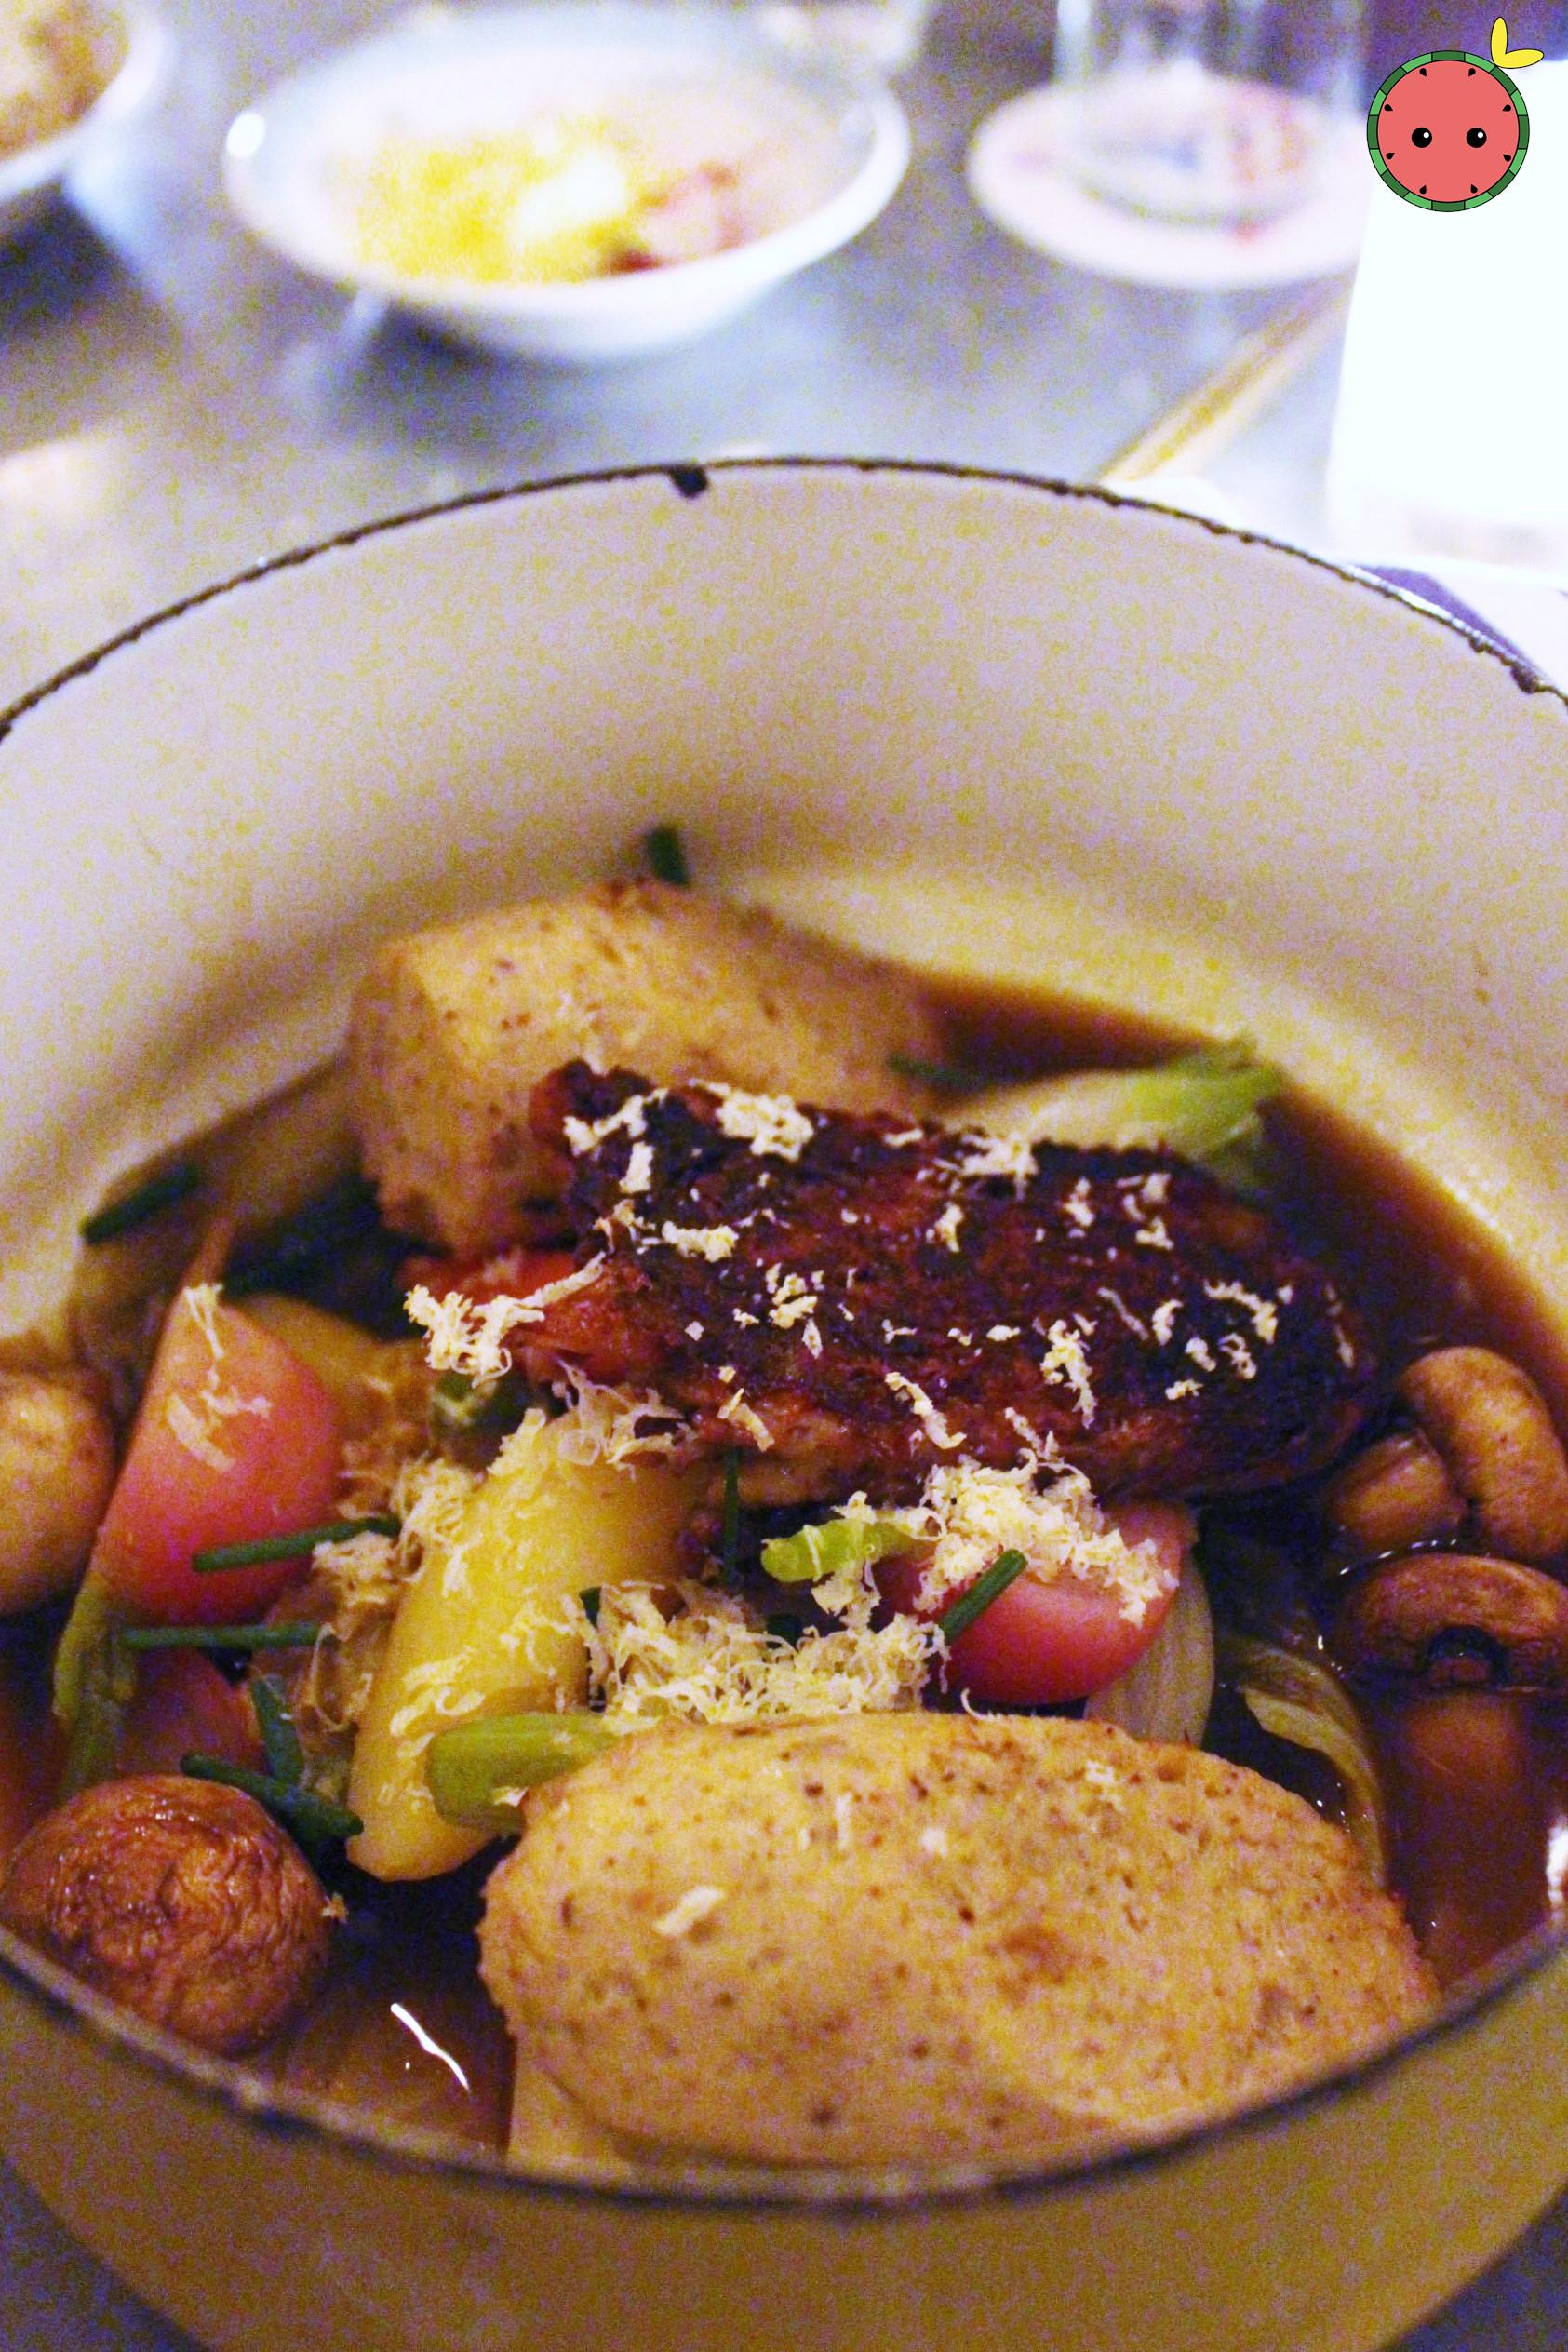 Plymouth Rock Pot au Feu with chicken skin and schmaltz toast